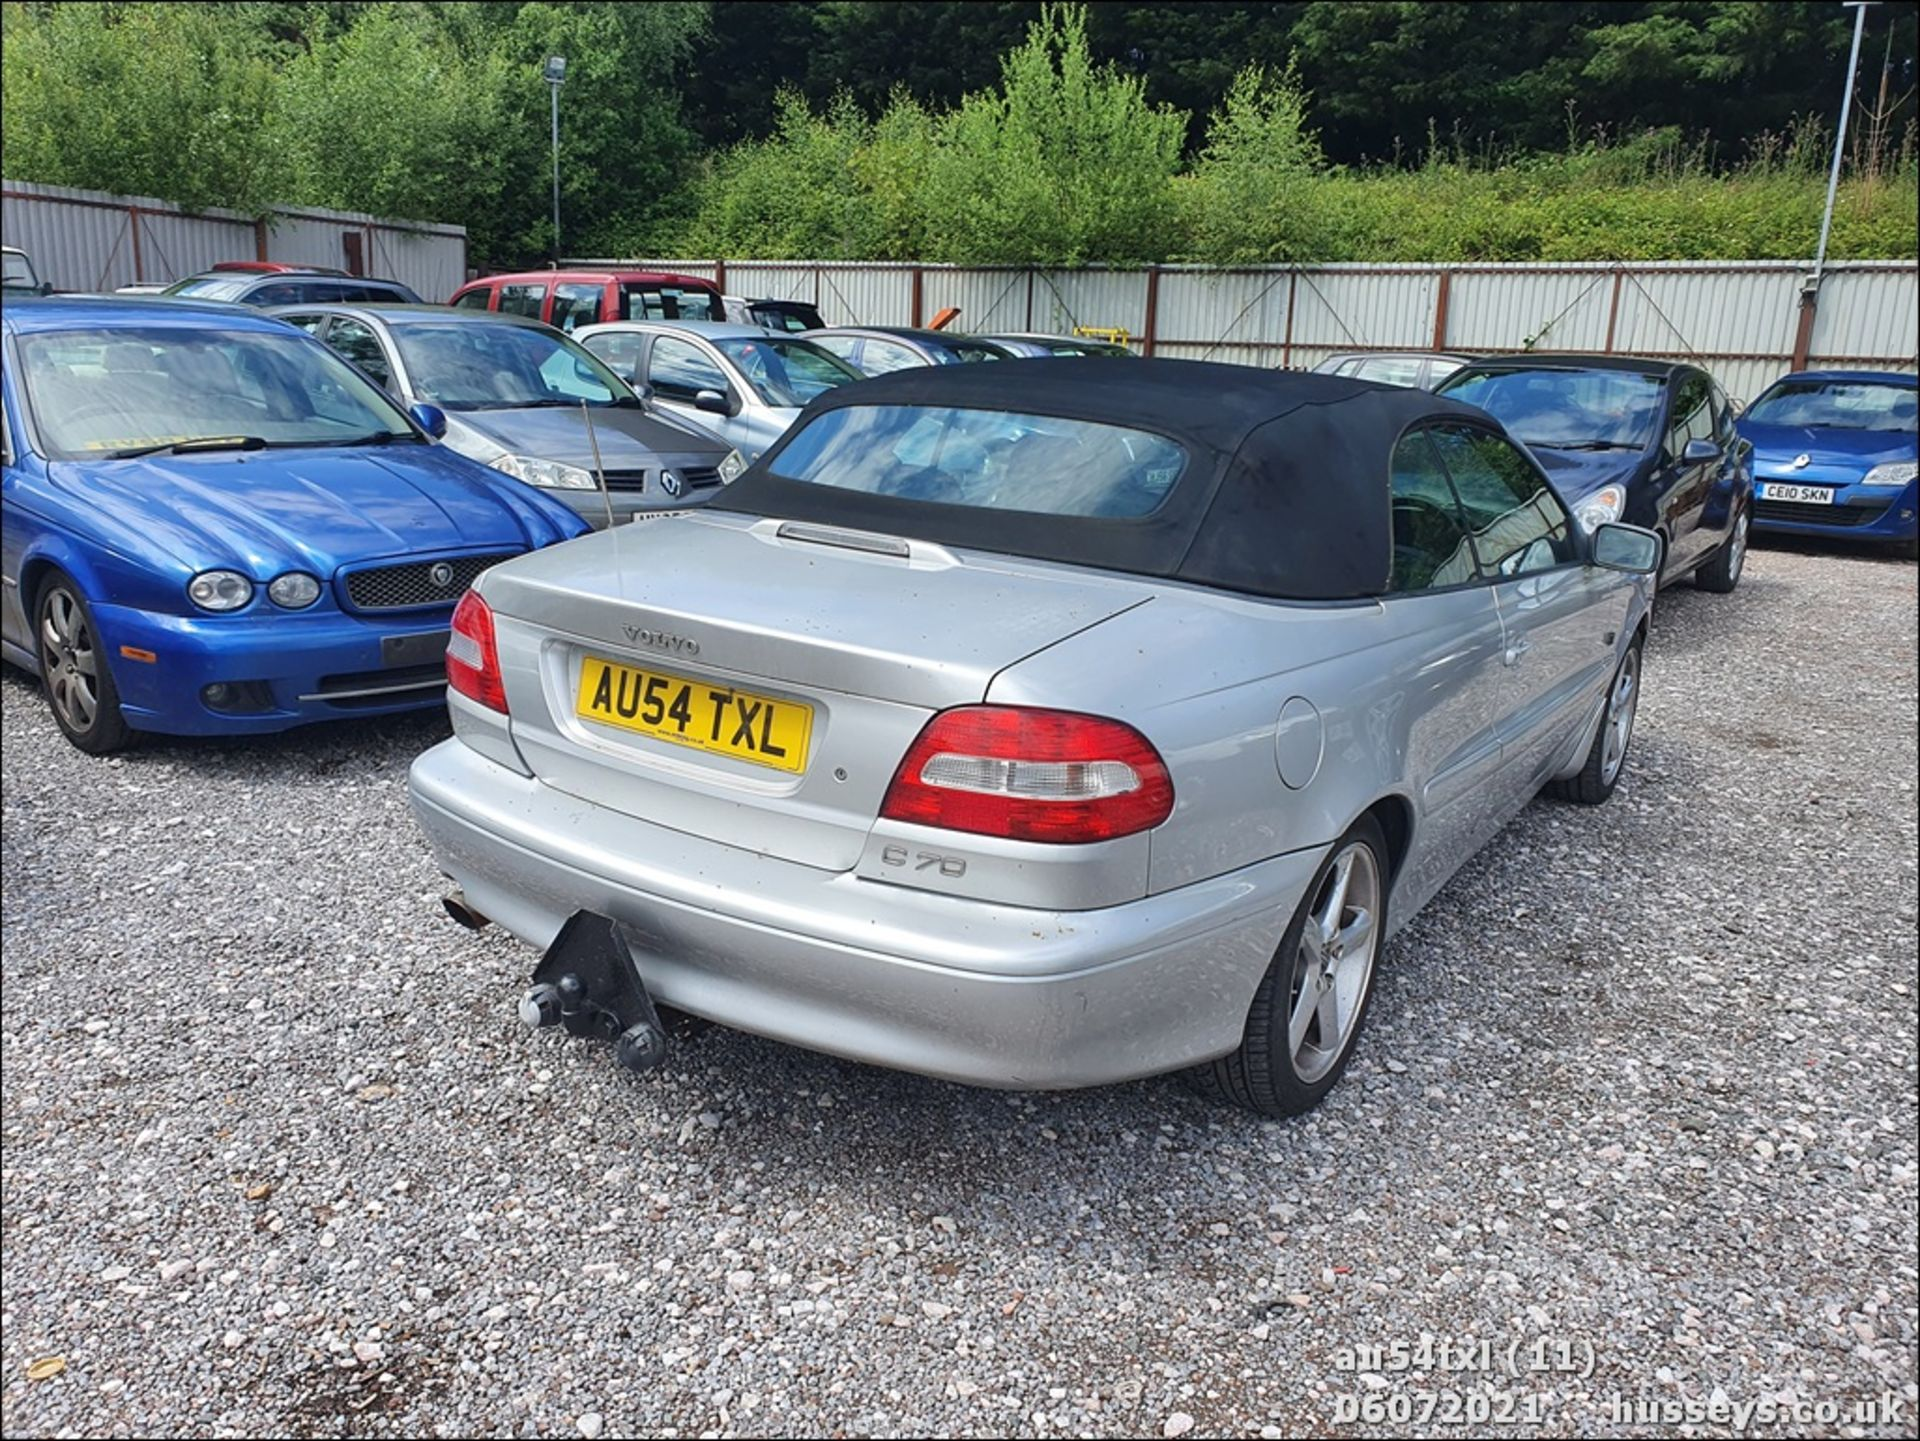 04/54 VOLVO C70 T - 1984cc 2dr Convertible (Silver, 136k) - Image 11 of 15